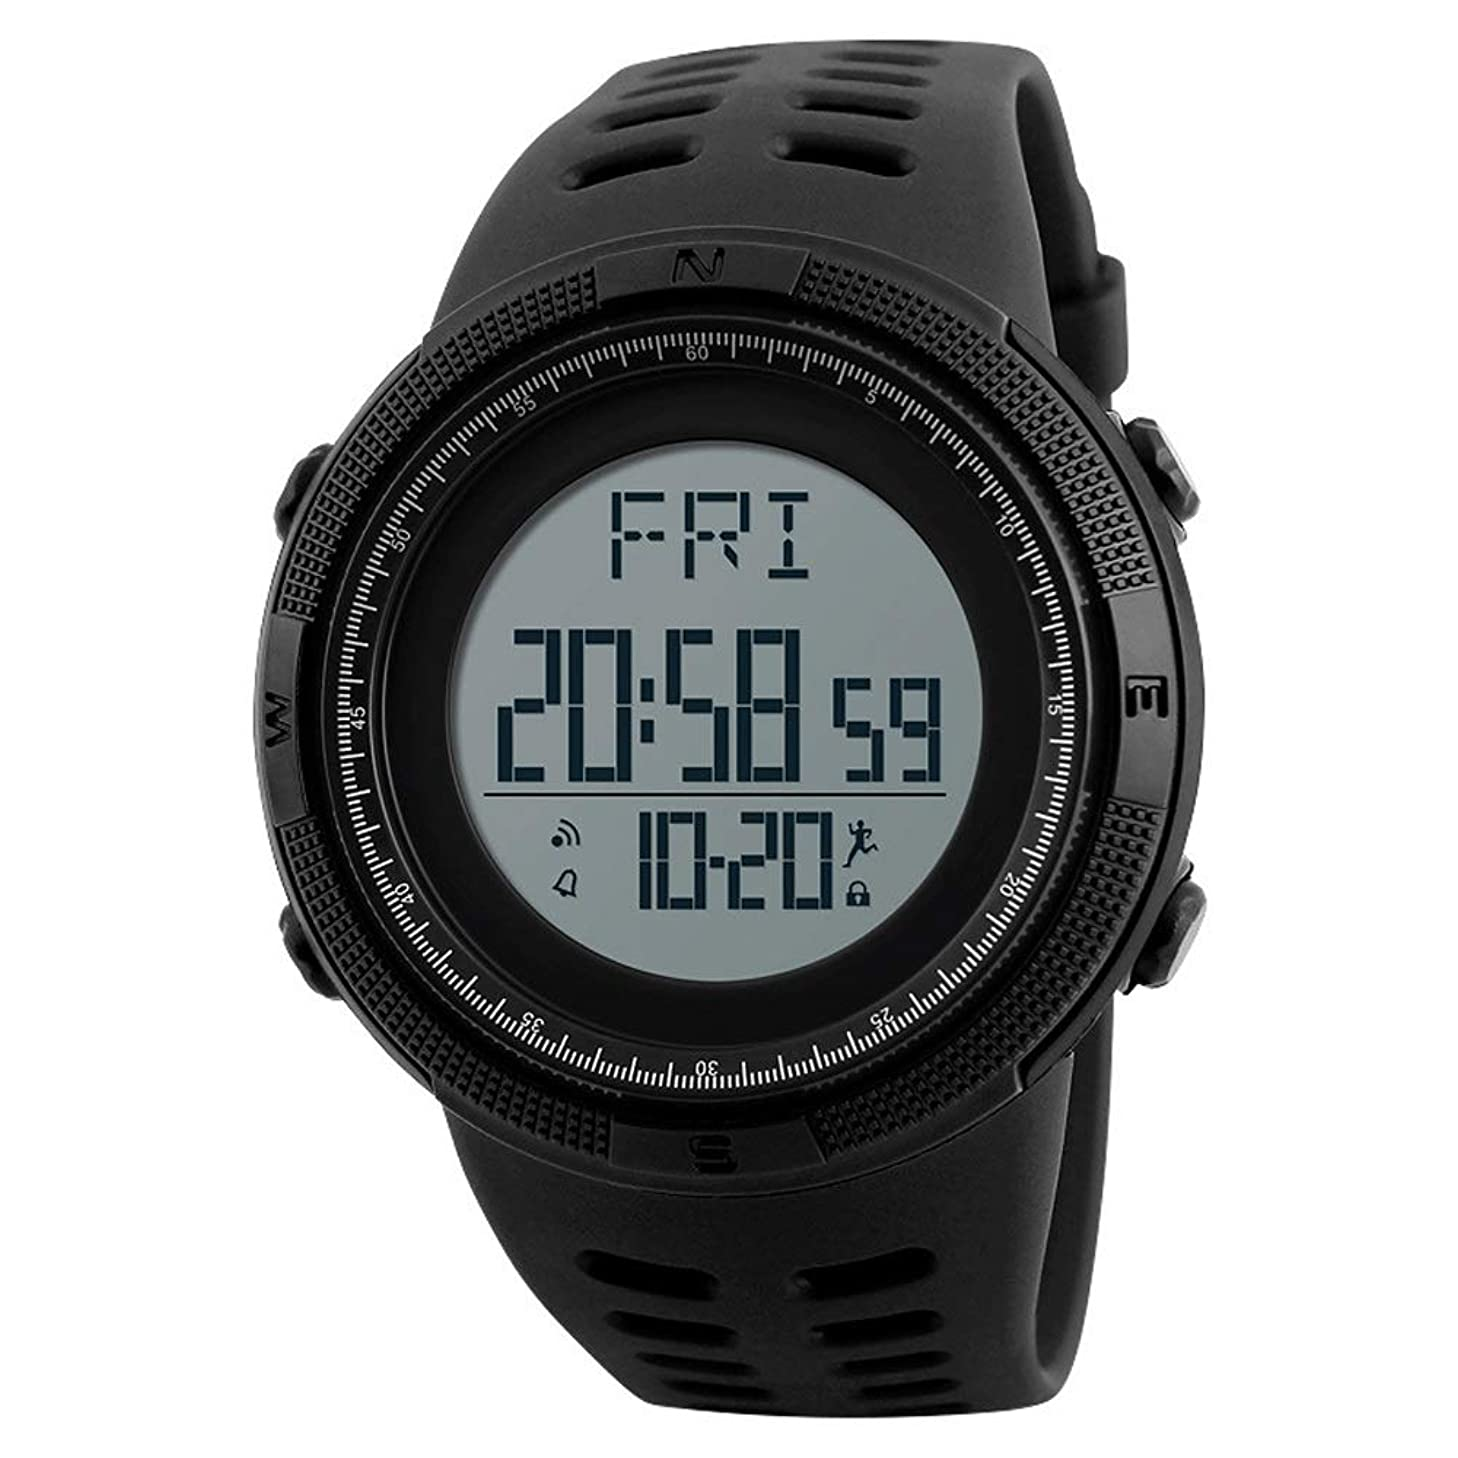 WFFXLL Smart Watch Multi-Function Pedometer Electronic Waterproof Men's Outdoor Sports Bluetooth Calorie Pedometer Fitness Bracelet Smart Watch (Color : Black)